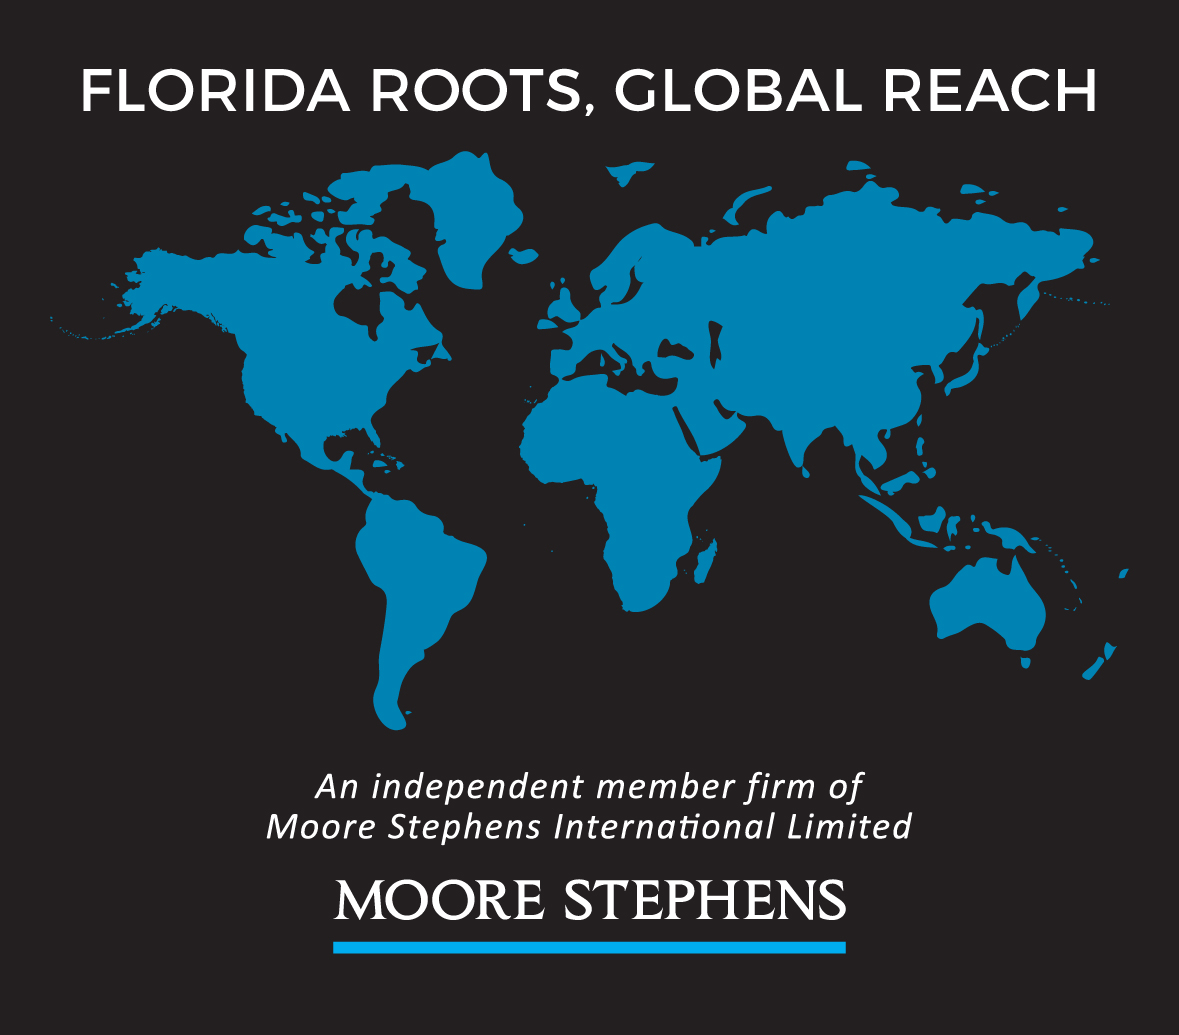 FLORIDA ROOTS, GLOBAL REACH